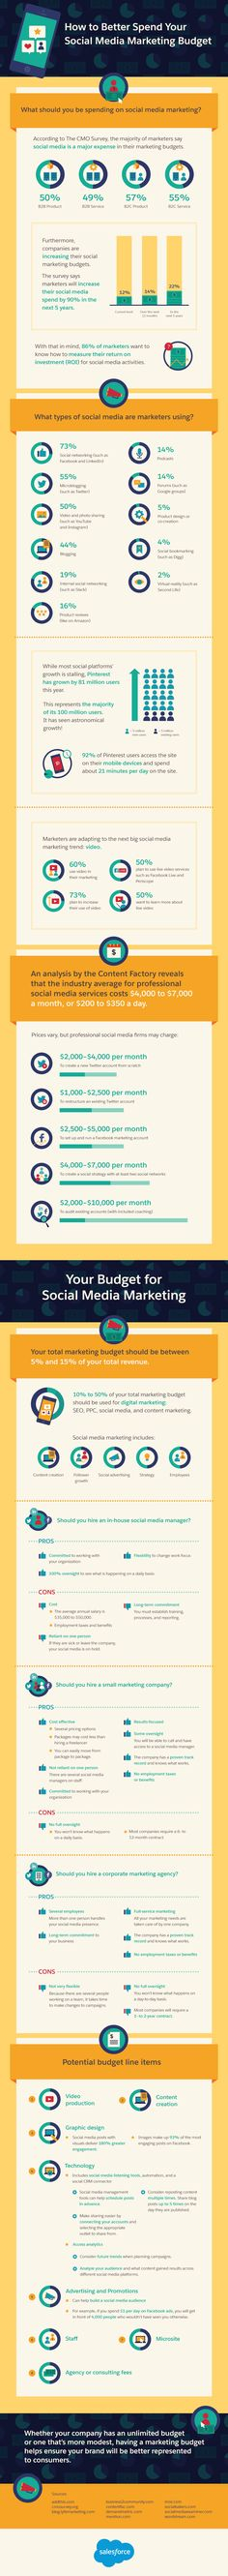 Wie Sie ihr #SocialMedia Budget richtig verteilen. How to Better Spend Your Social #Media #Marketing #Budget